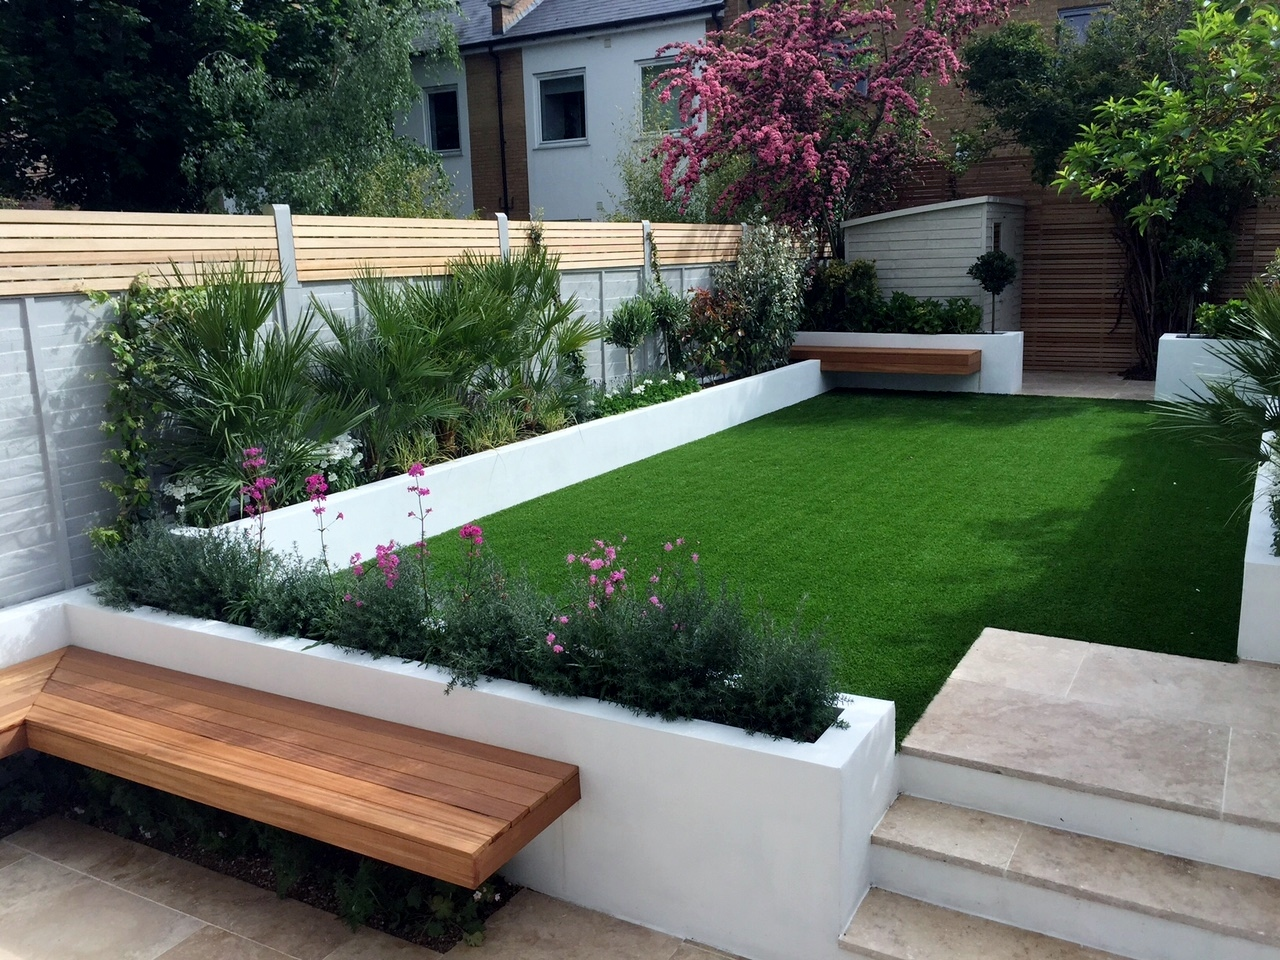 Modern garden design ideas fulham chelsea battersea for Images of garden designs